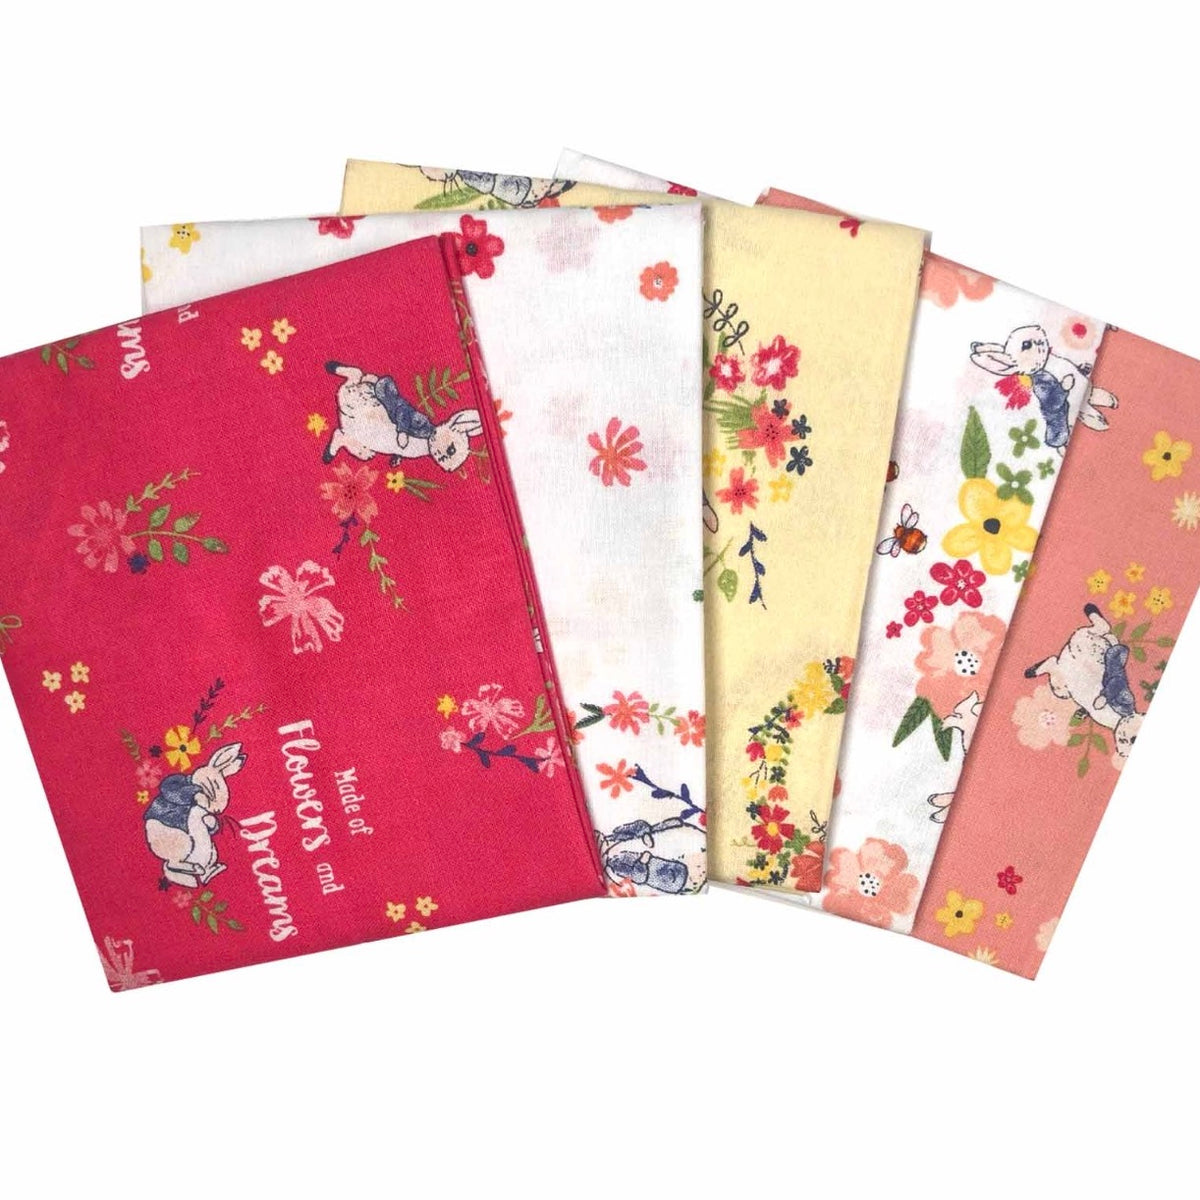 NEW 5 piece Peter rabbit fat quarter bundle  100% Cotton